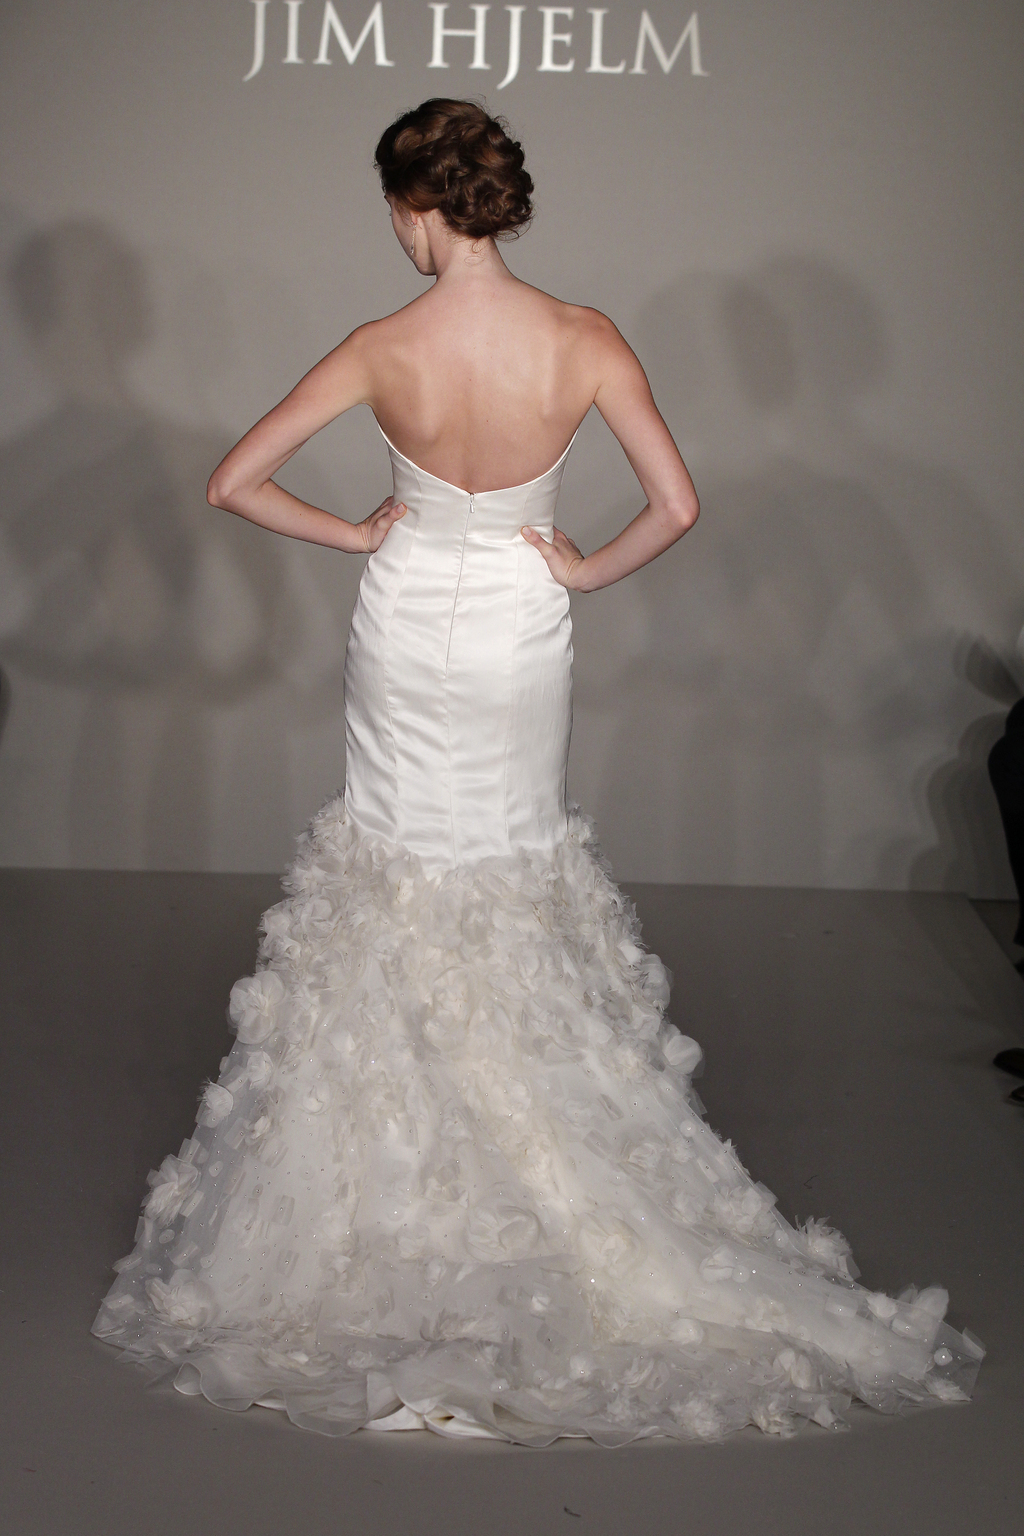 Jim-hjelm-wedding-dress-spring-2012-bridal-gowns-8212-back.full